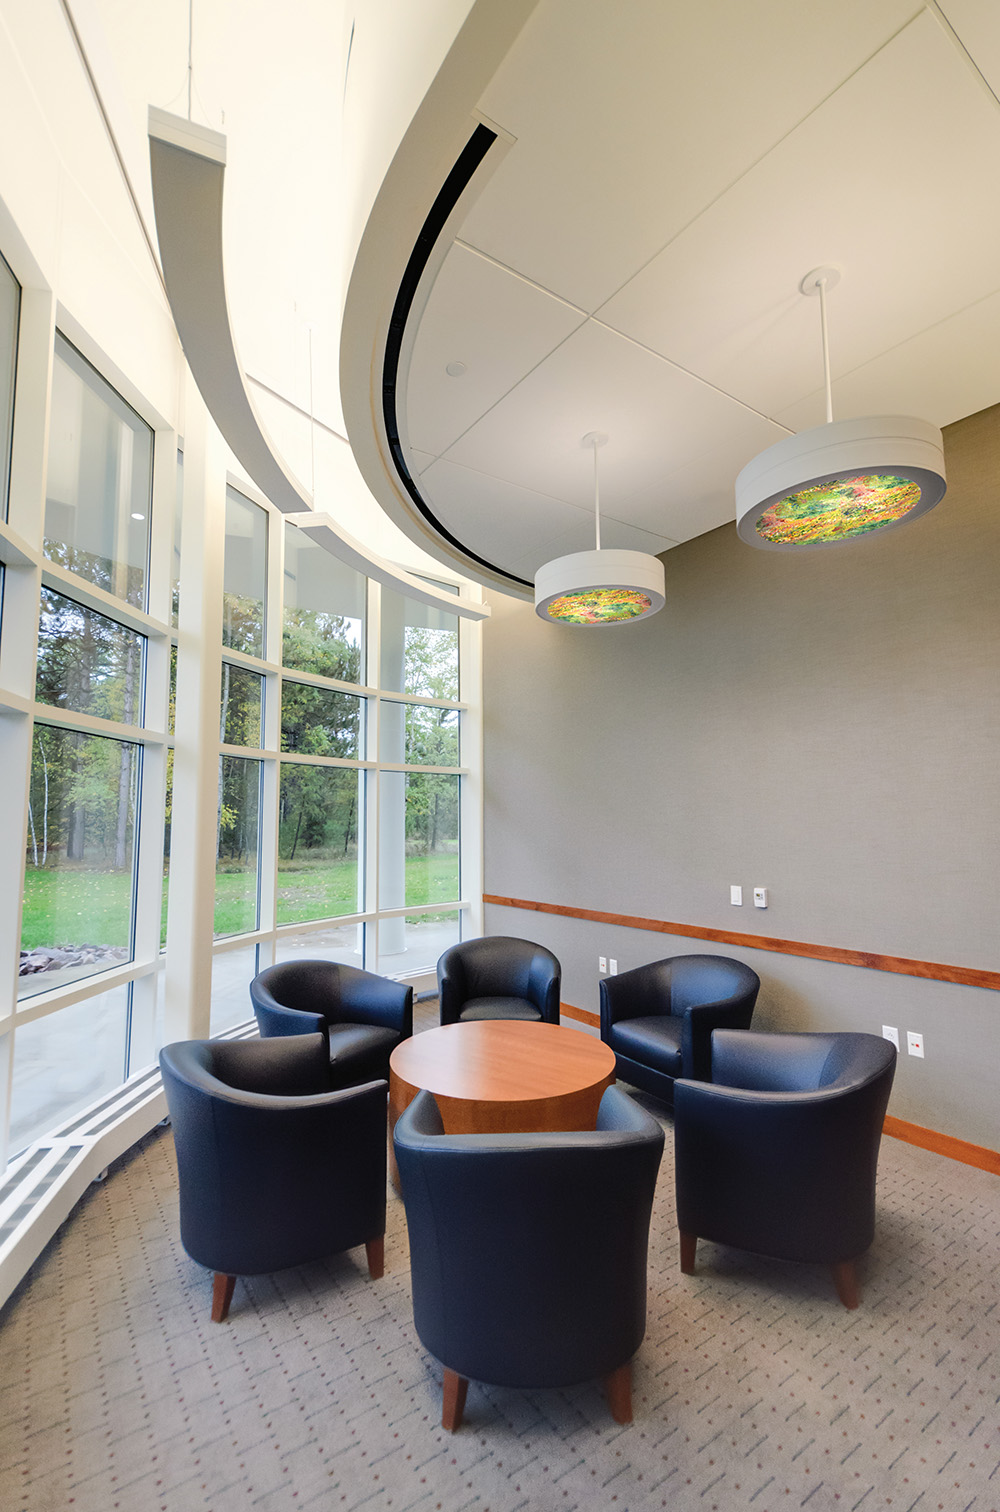 Omnience office lighting fixtures with Vara Kamin diffusers over a small meeting area near large windows.